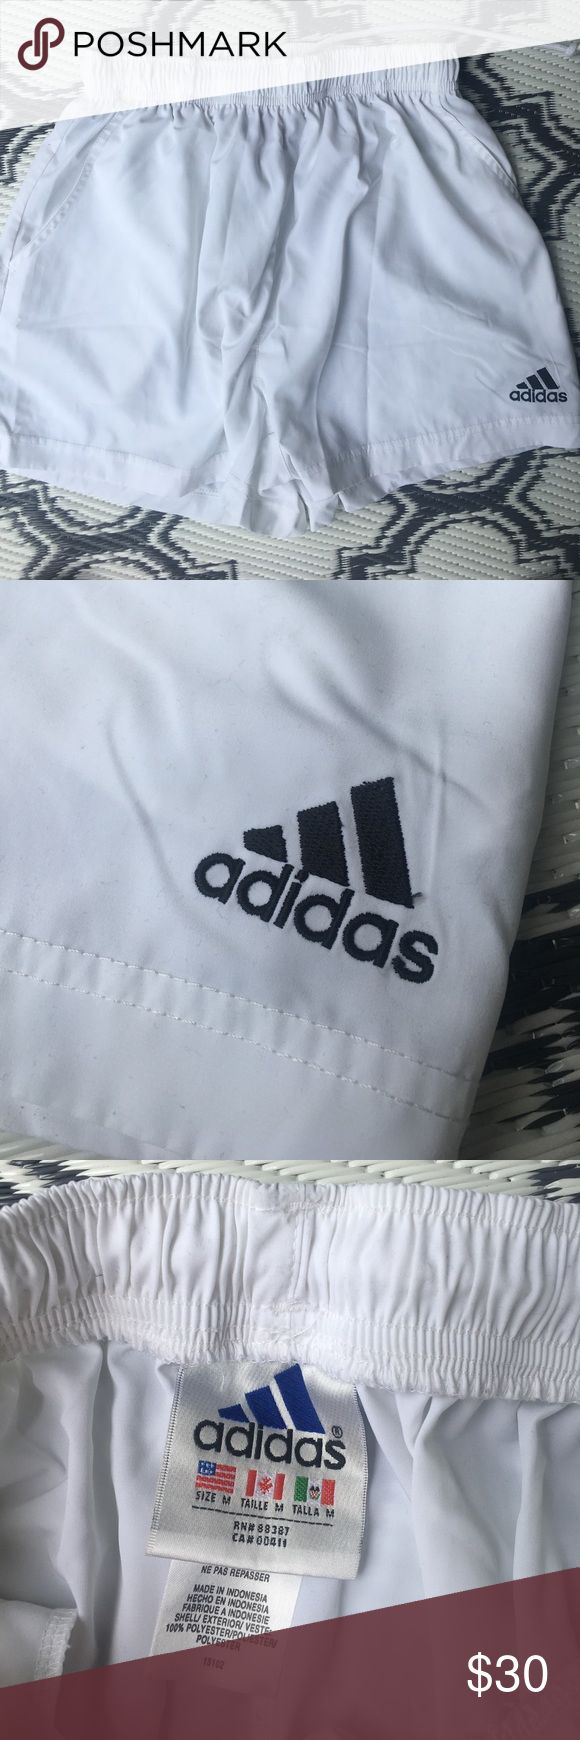 ADIDAS WHITE SHORTS SIZE MEDIUM ATHLETIC LIKE NEW ADIDAS SHORTS!! Size medium. Pockets. I love these shorts so much but they don't fit! adidas Shorts